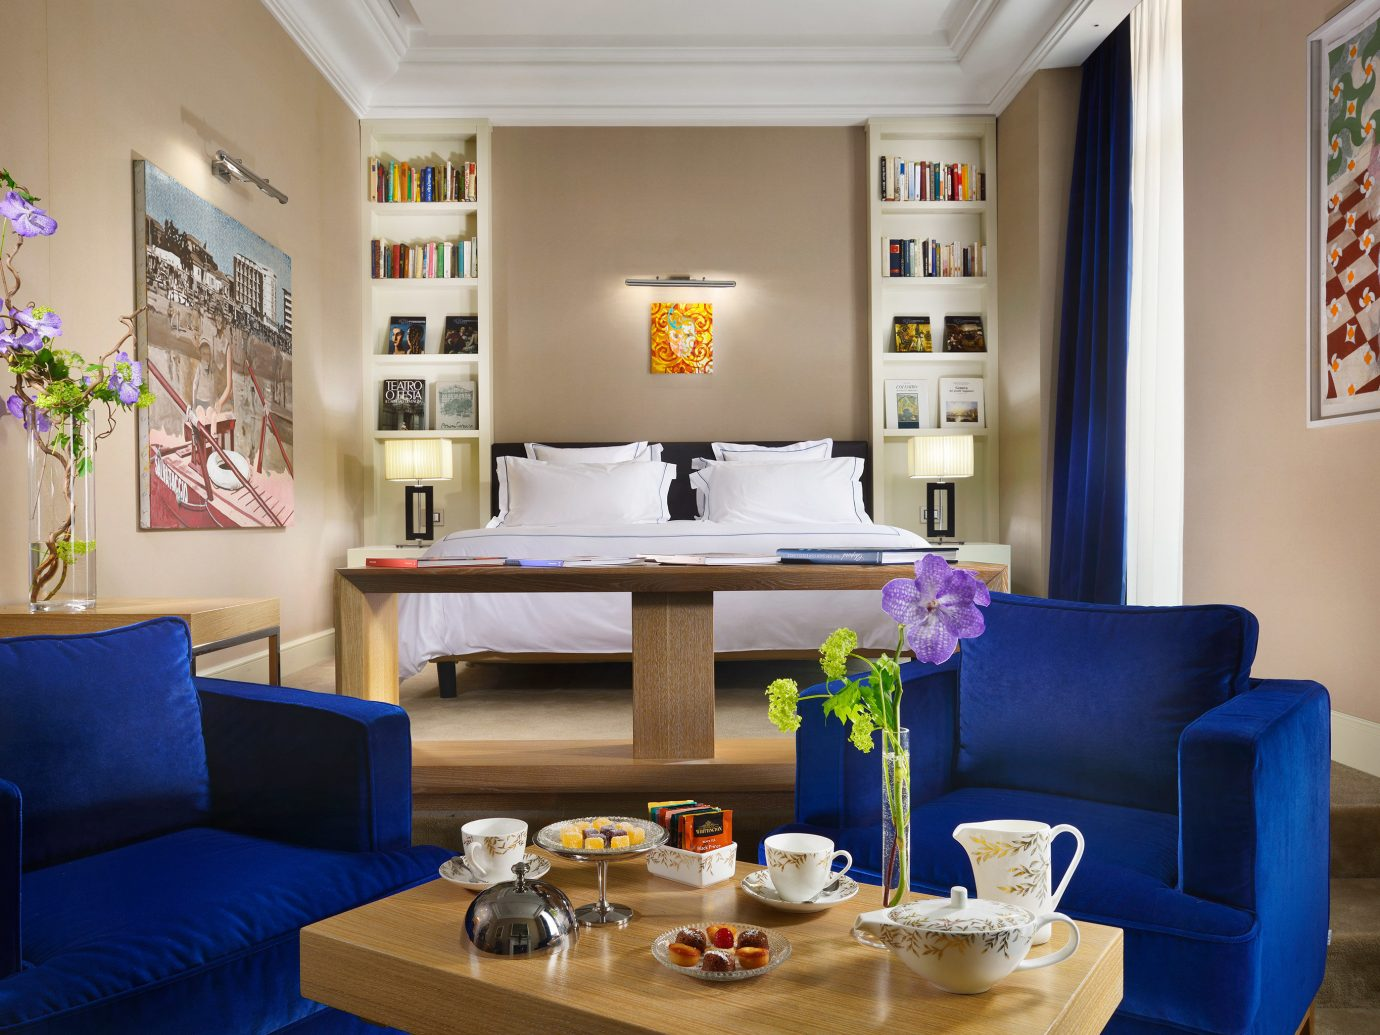 Bedroom Boutique Boutique Hotels City Eat Italy Luxury Travel Romantic Hotels Rome wall indoor table Living floor living room room property blue furniture home interior design dining room estate cottage decorated set several colored